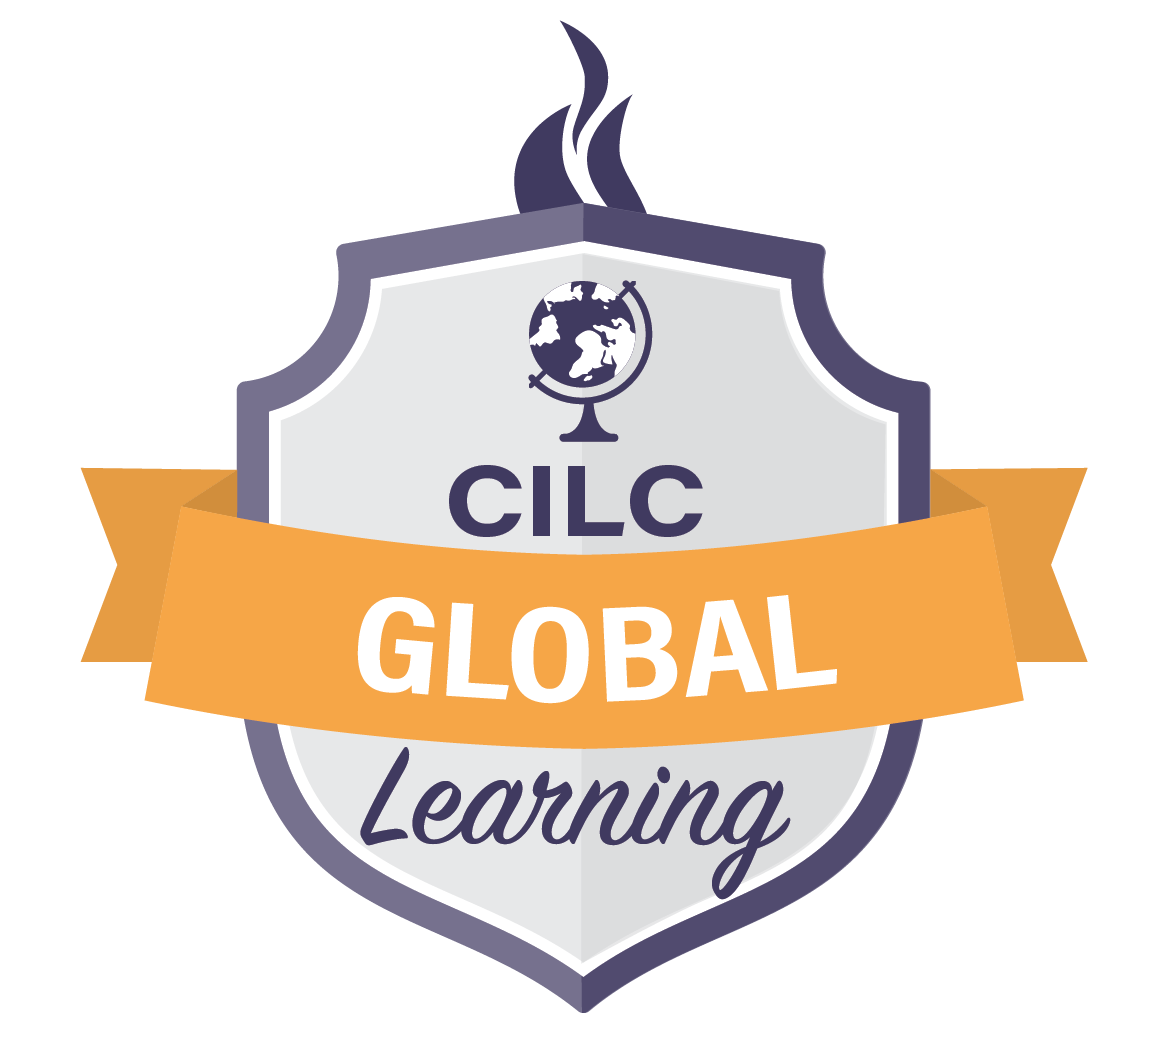 CILC Global Learning Value Seal